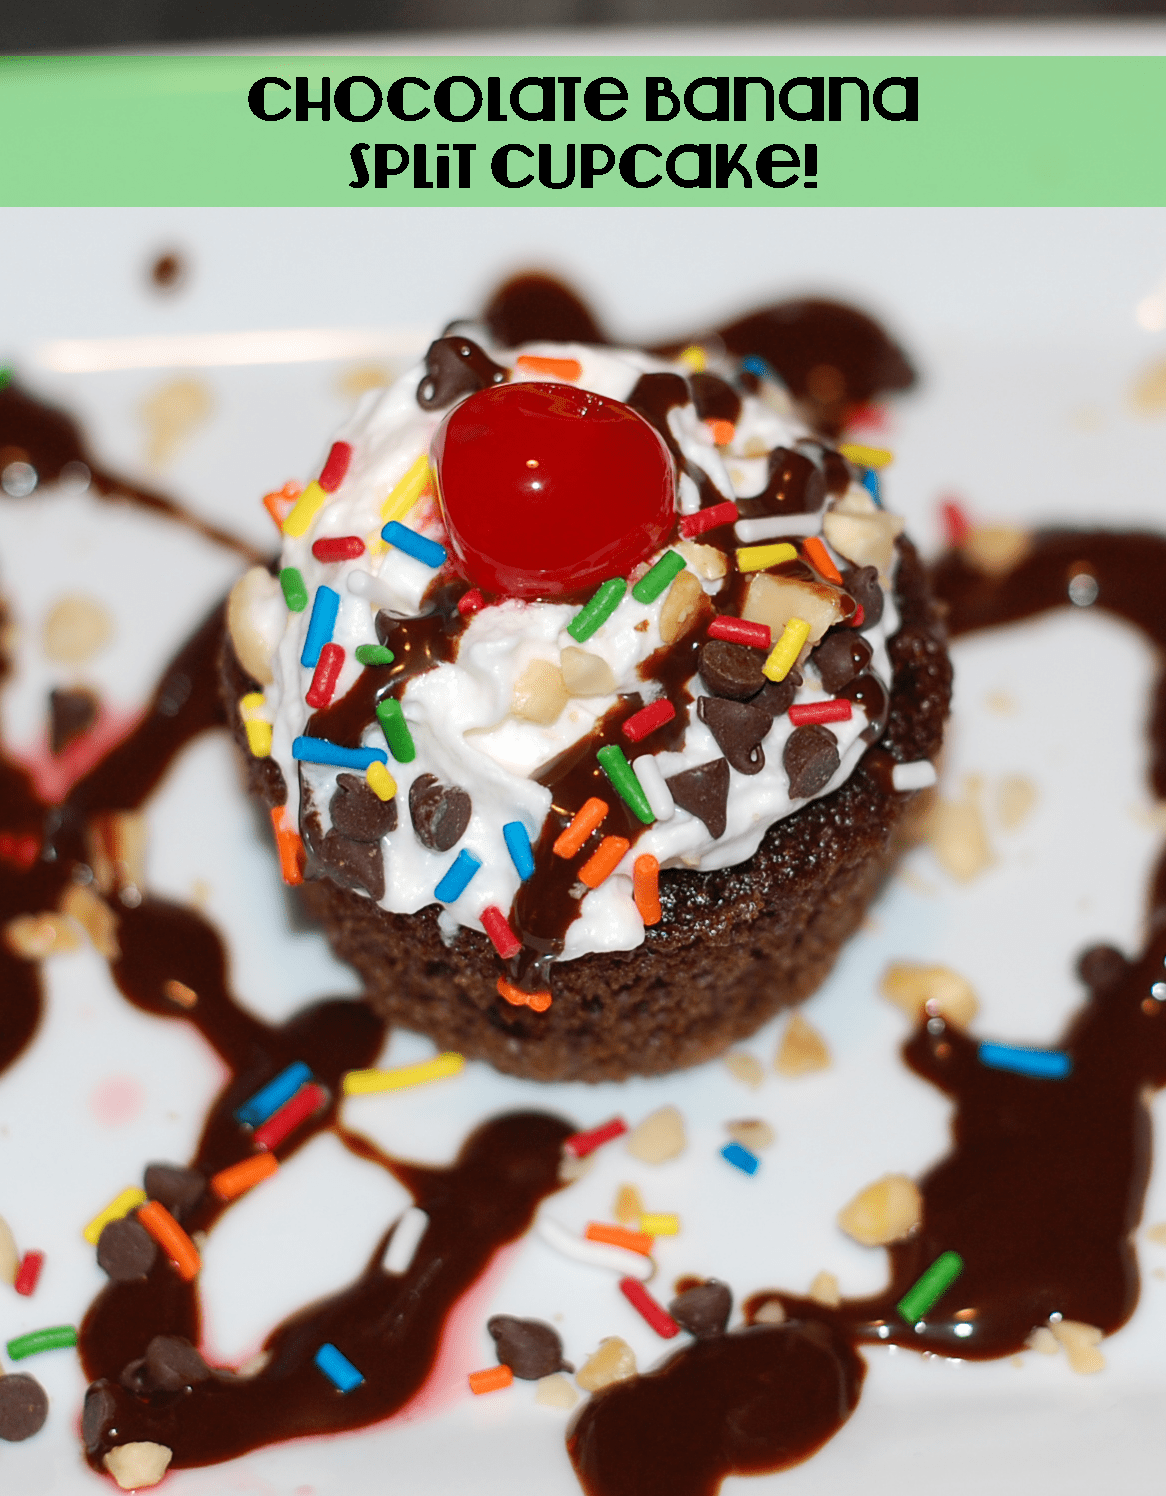 Chocolate Banana Split Cupcakes